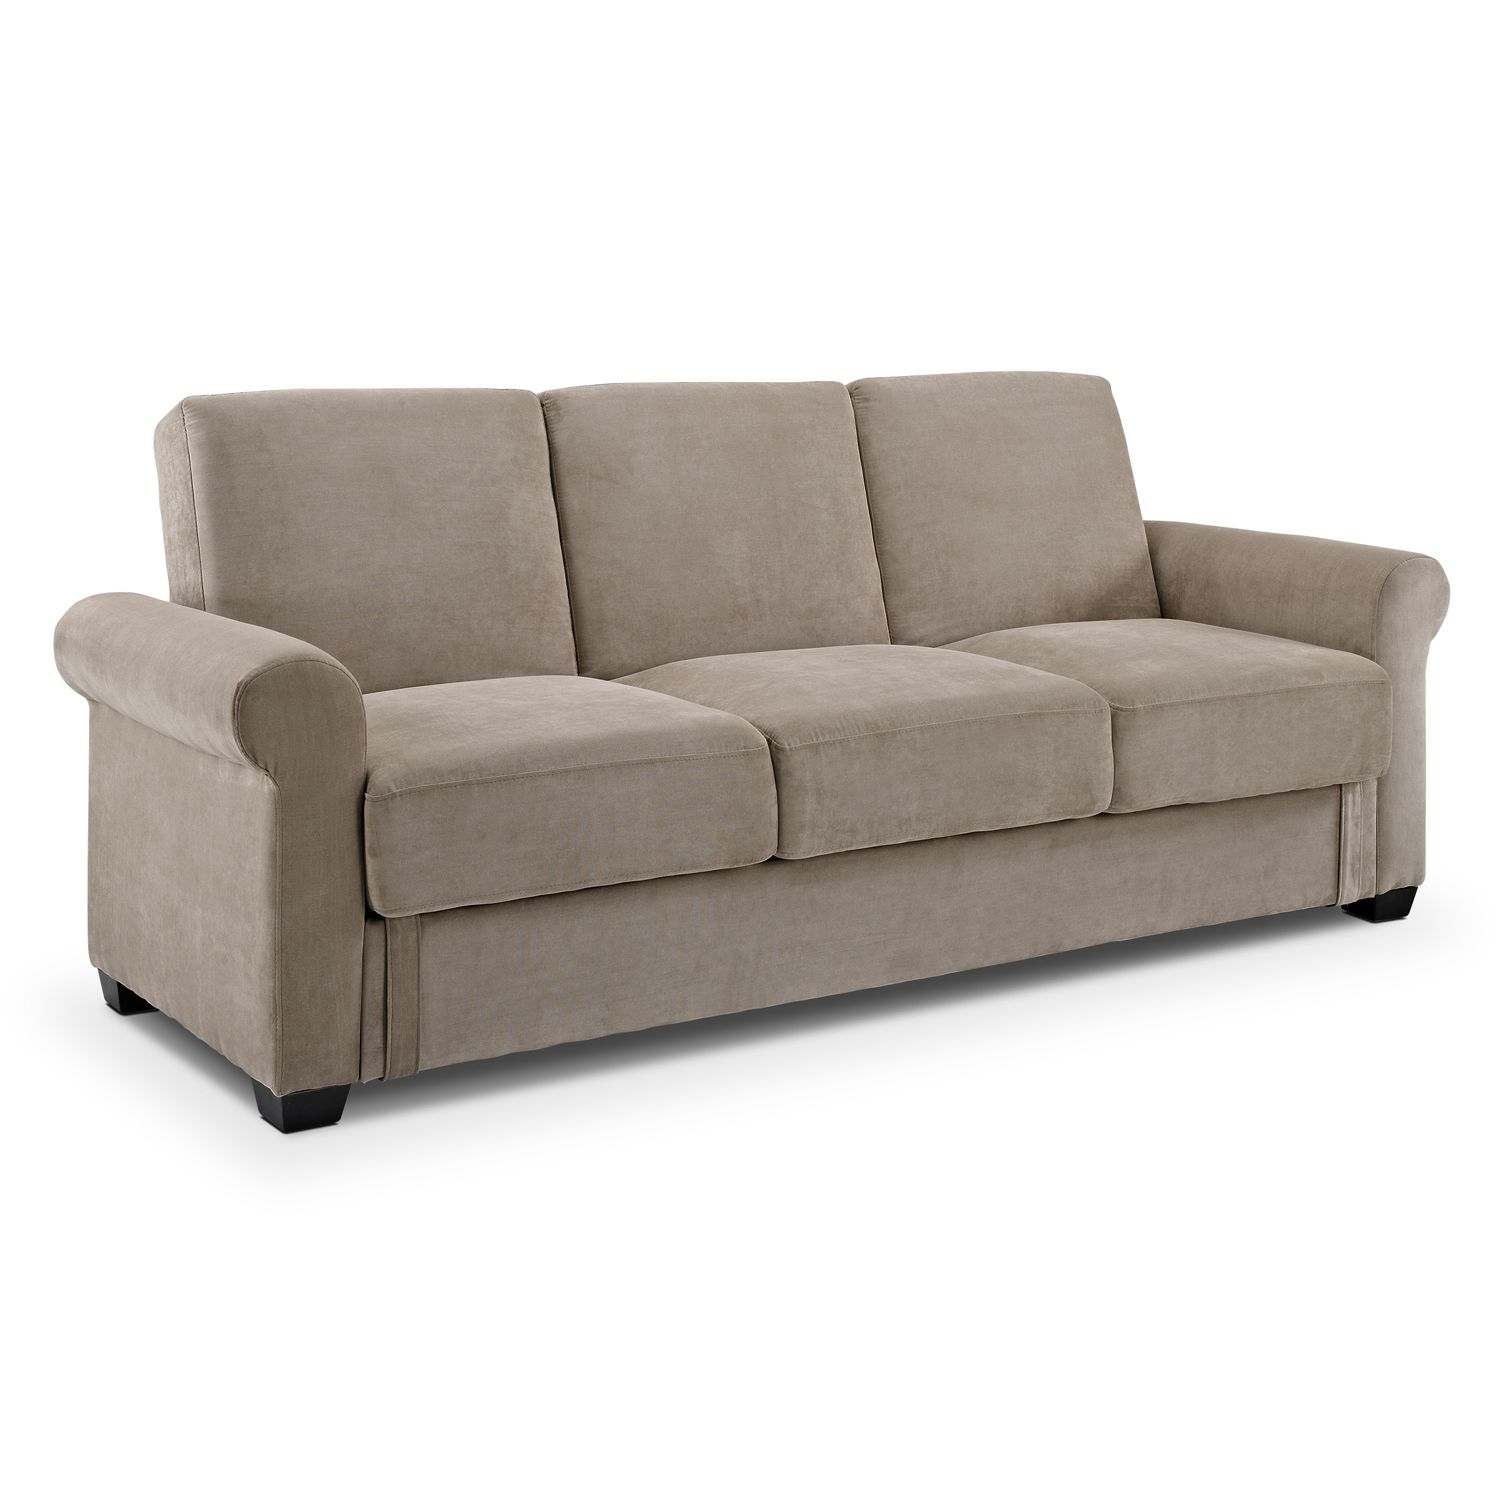 value city furniture sofa bed electric recliner repair singapore thomas upholstery futon with storage